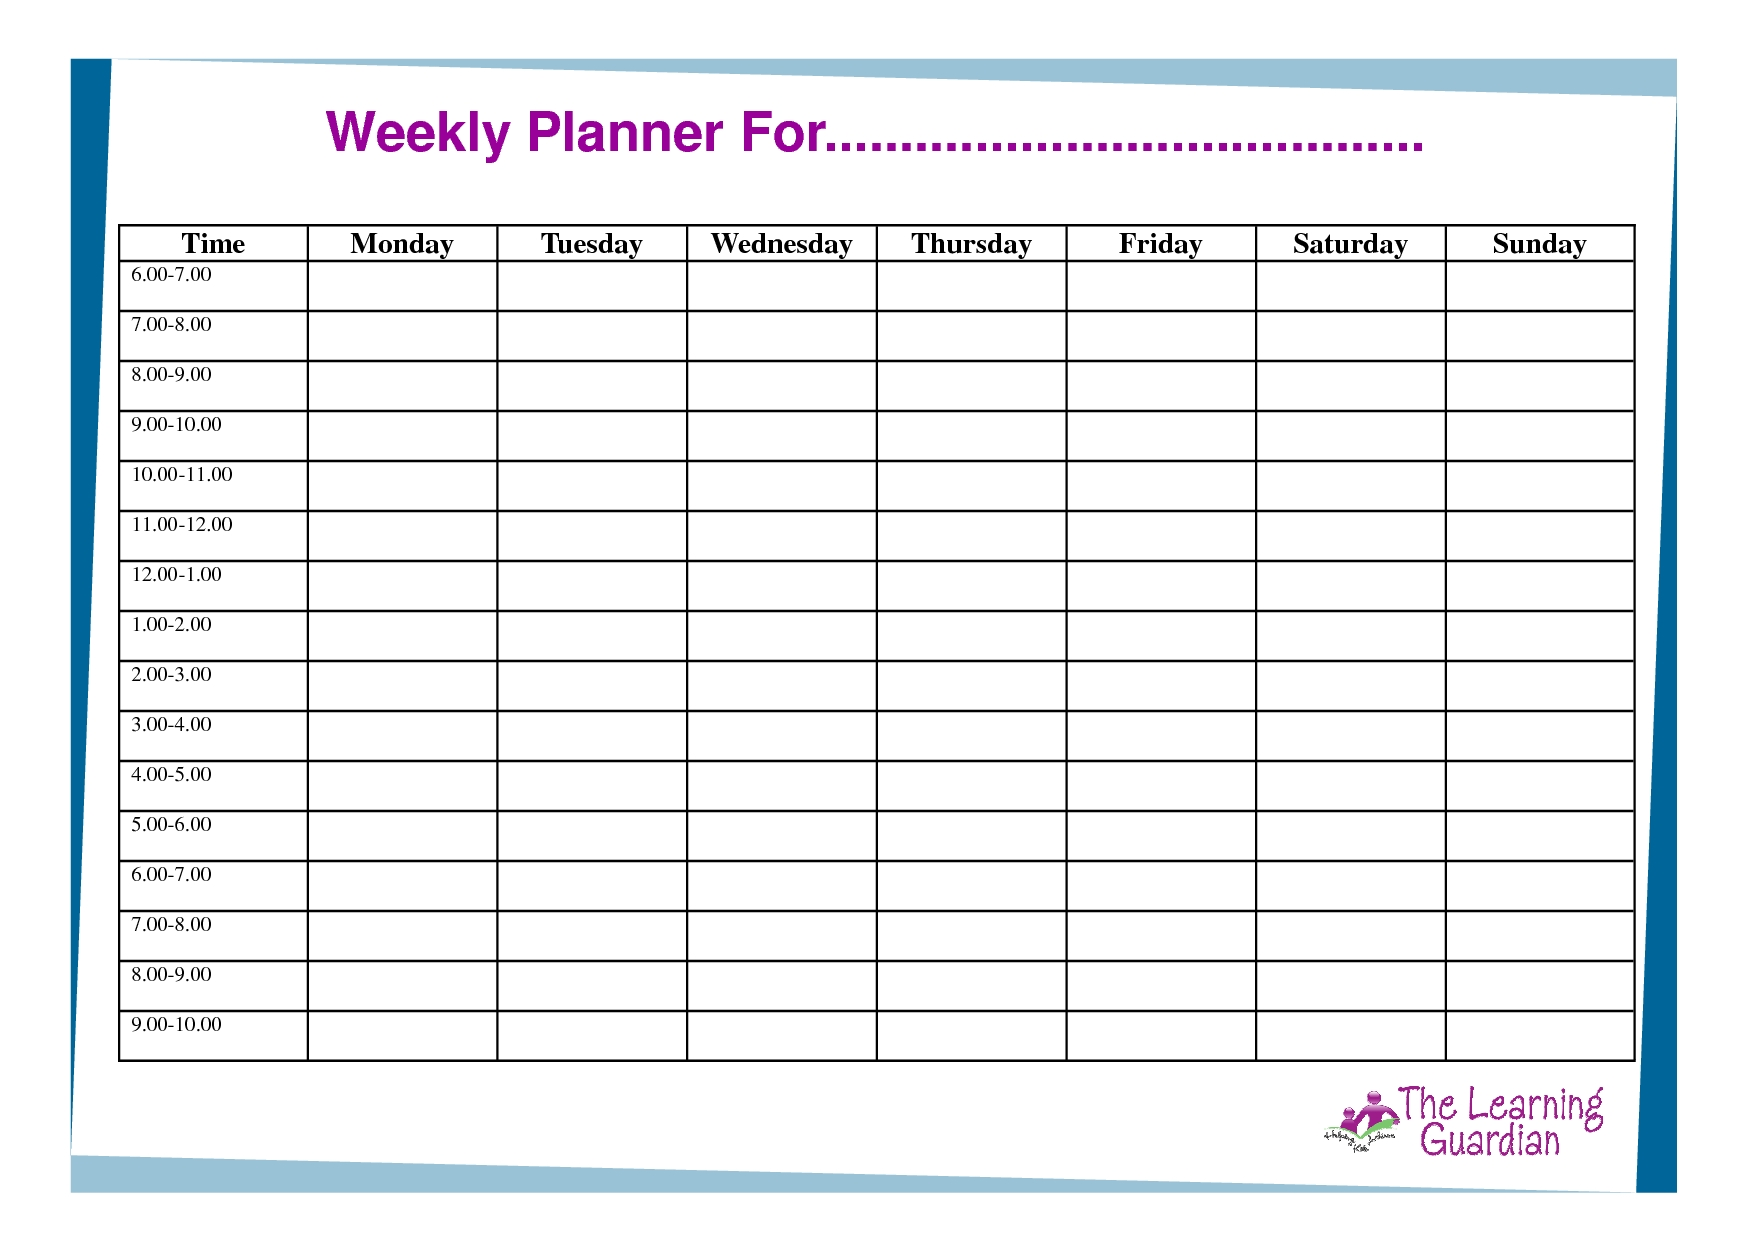 Blank Weekly Schedule With Times